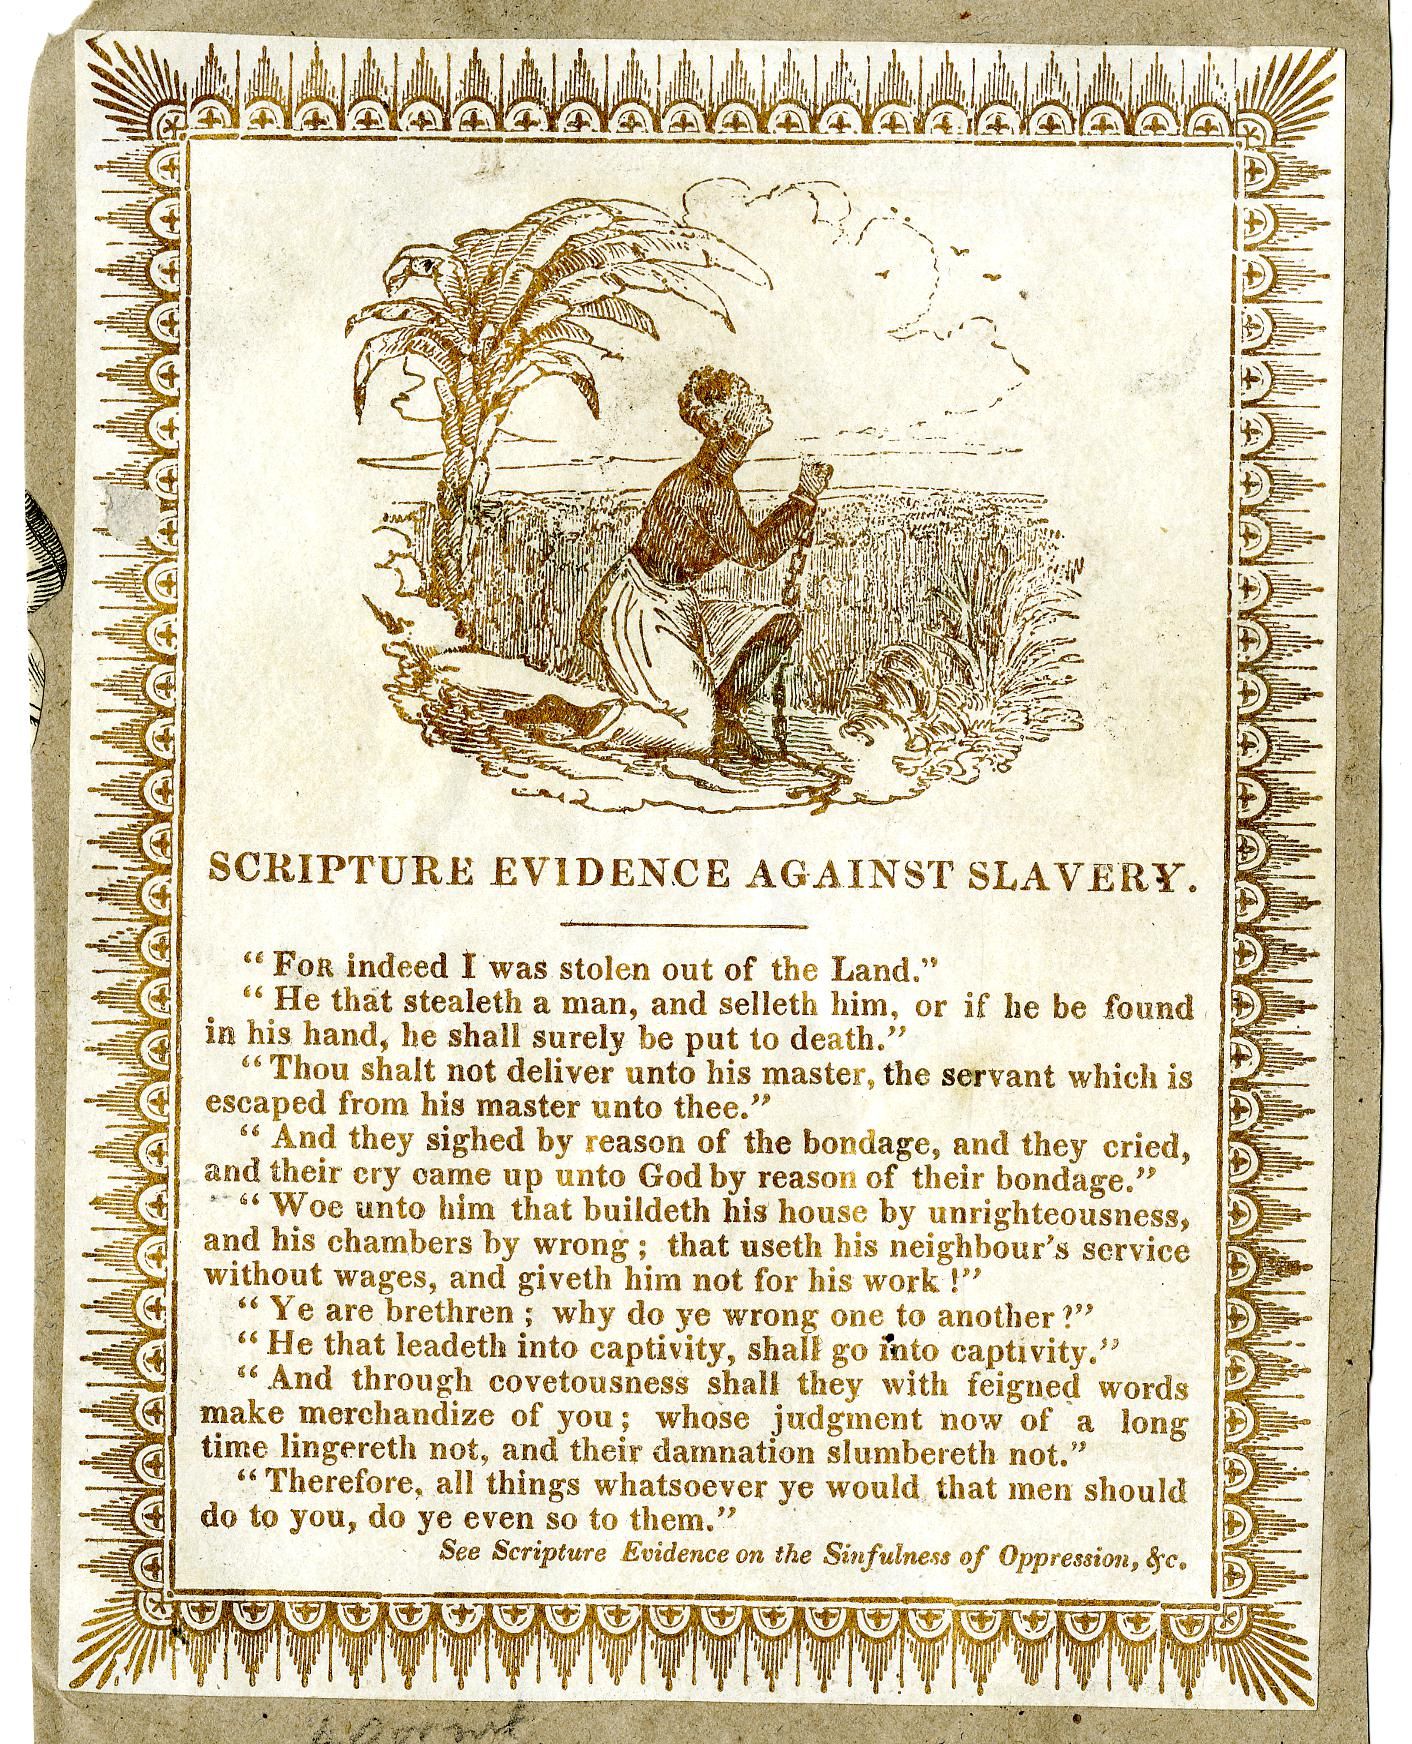 Page from a scrap book printed brown on white paper, with patterned border. There is an image of a kneeling, chained enslaved African woman. Below the image is a list of the Scripture Evidence Against Slavery, with Bible quotes.